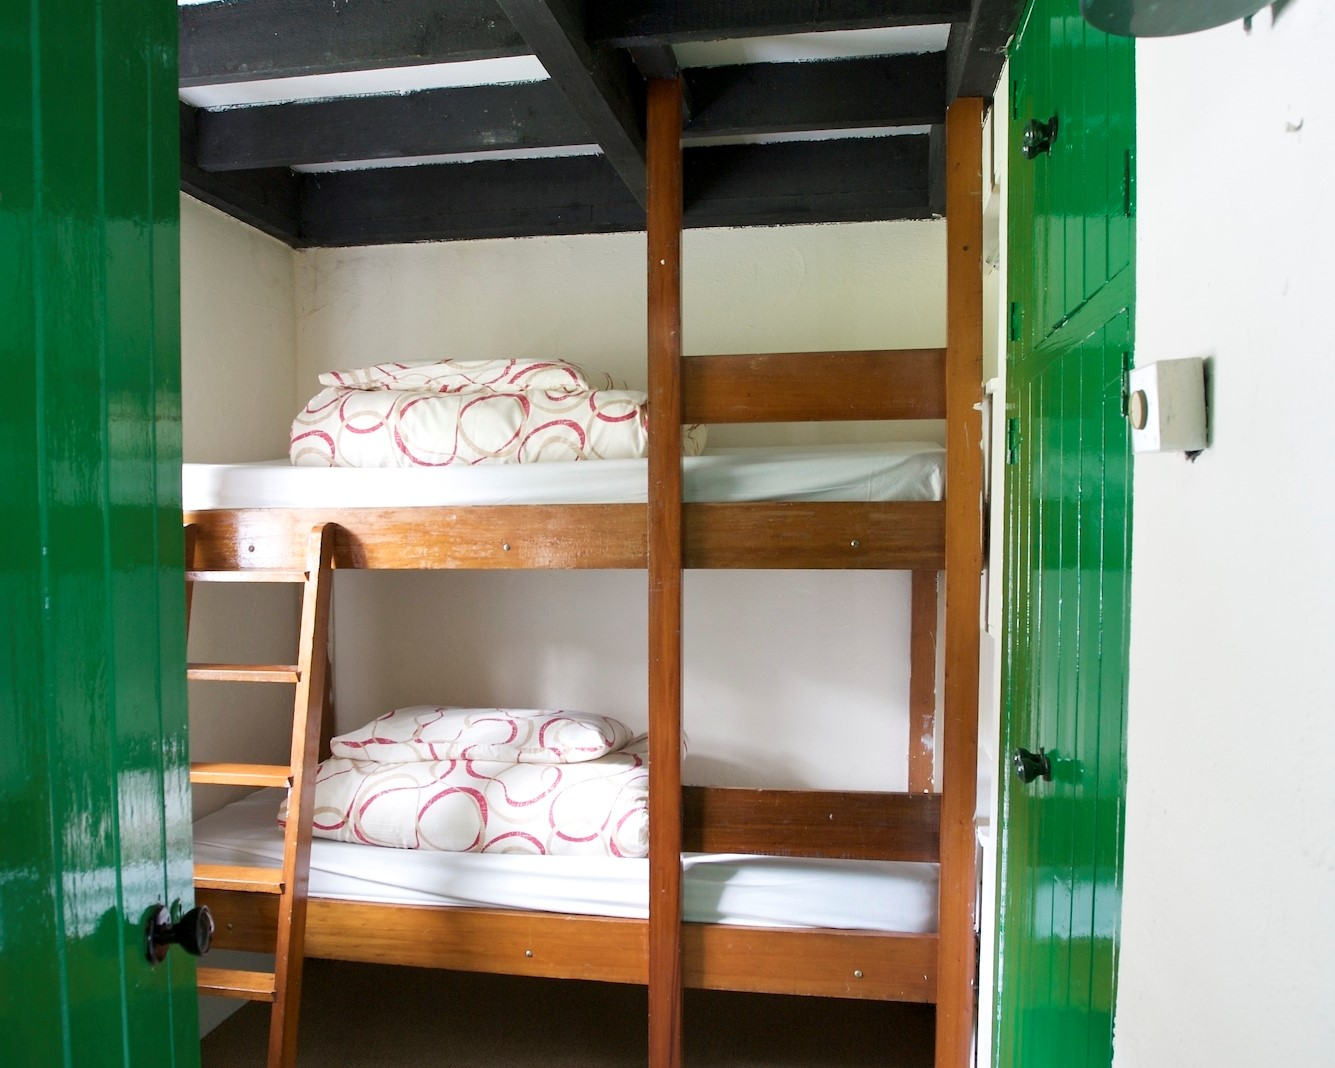 Corofin Bunk Room with ceiling beams and wood cabinets